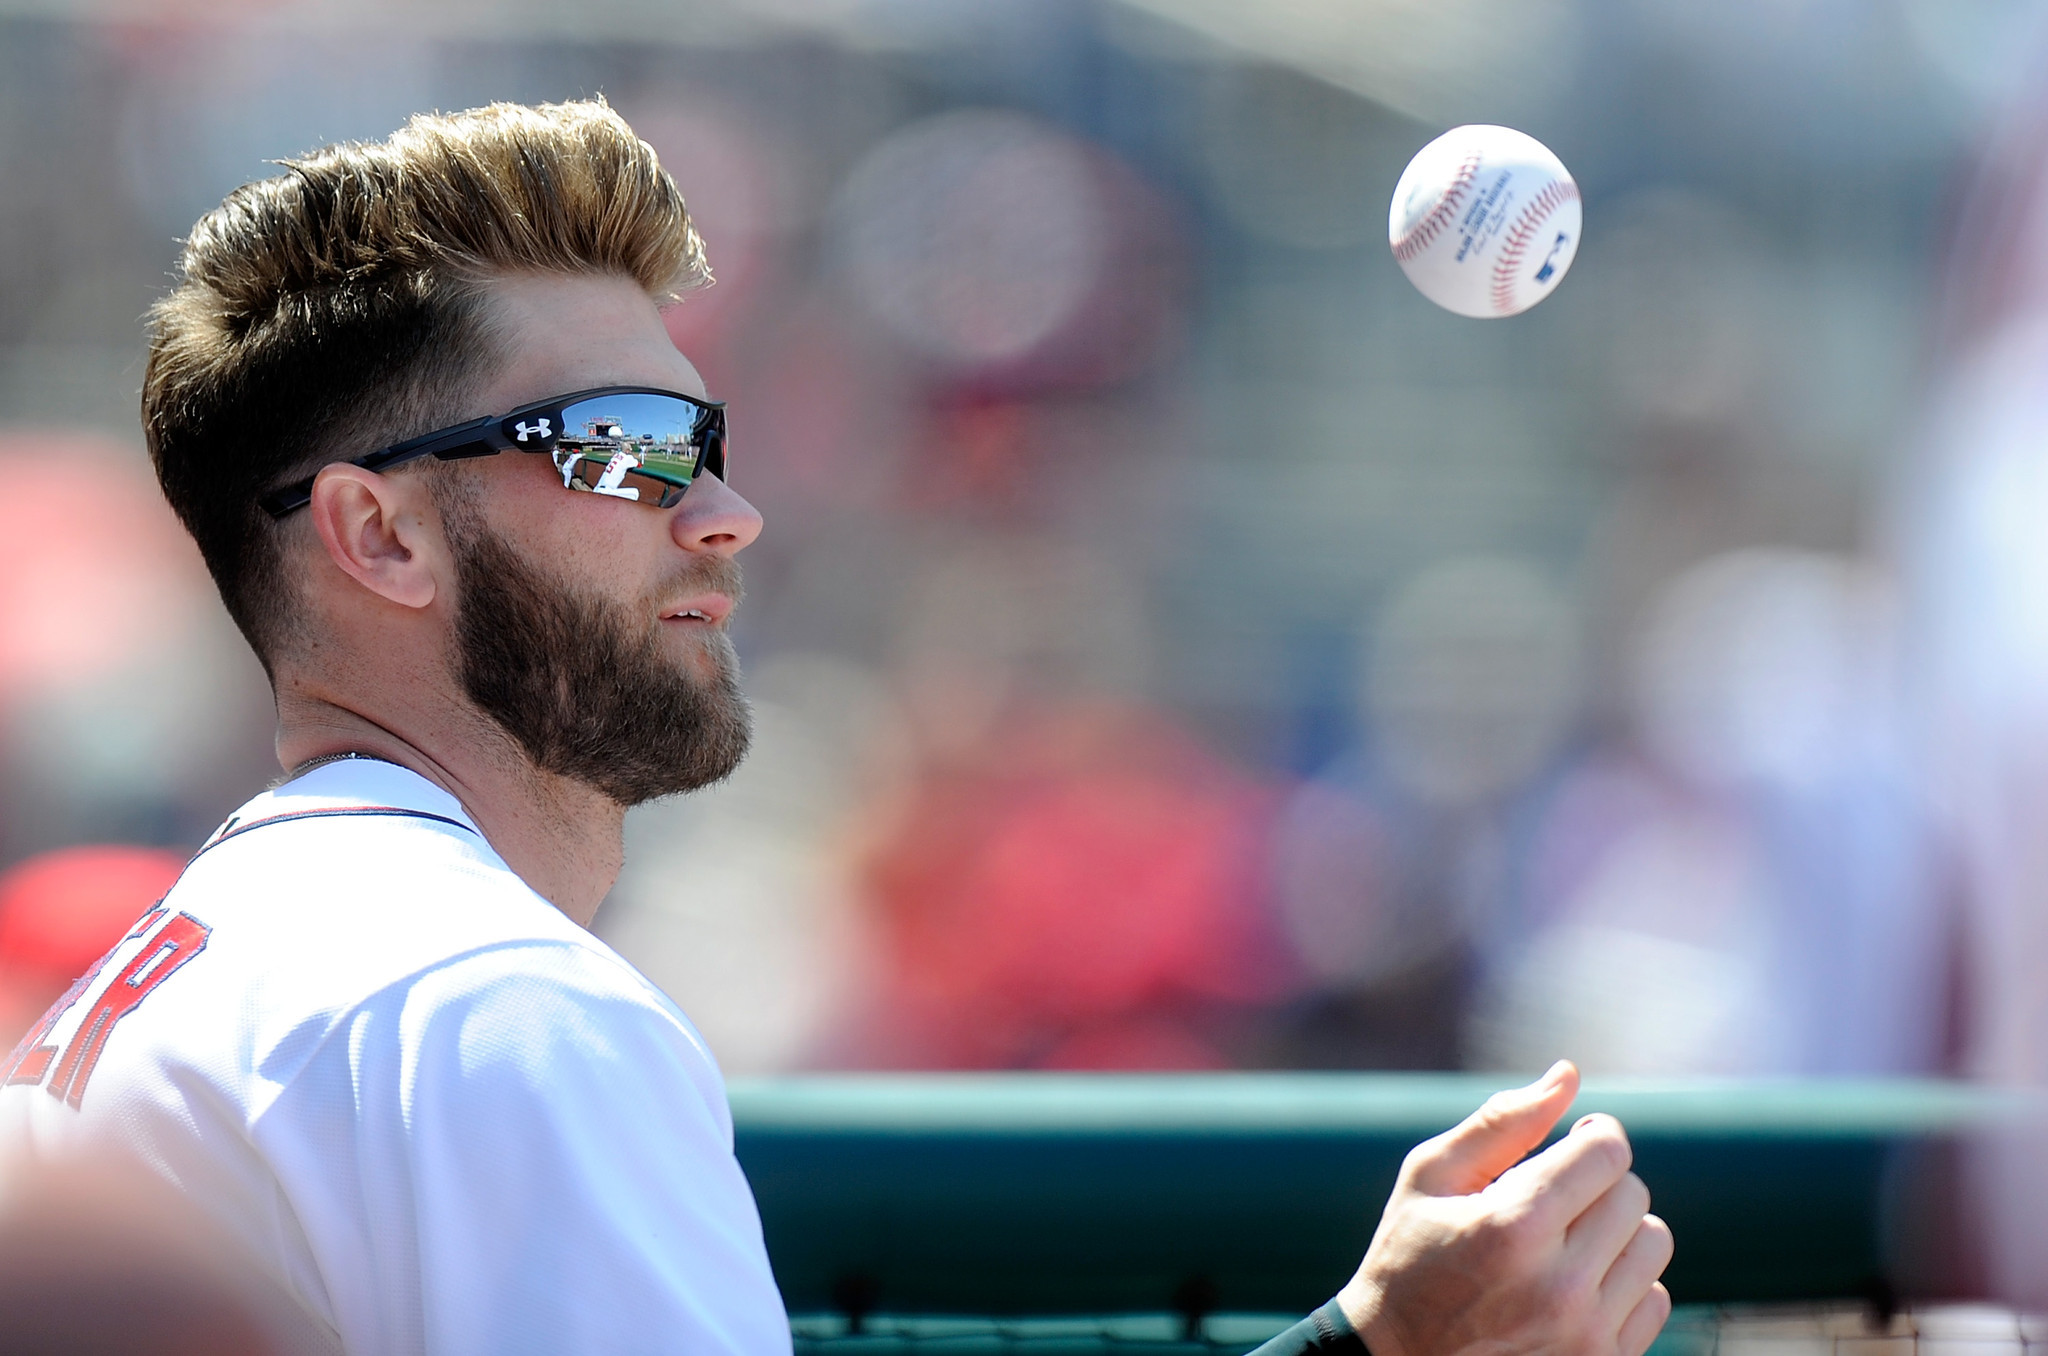 Bryce Harper wearing the Under Armour Freedom Rival